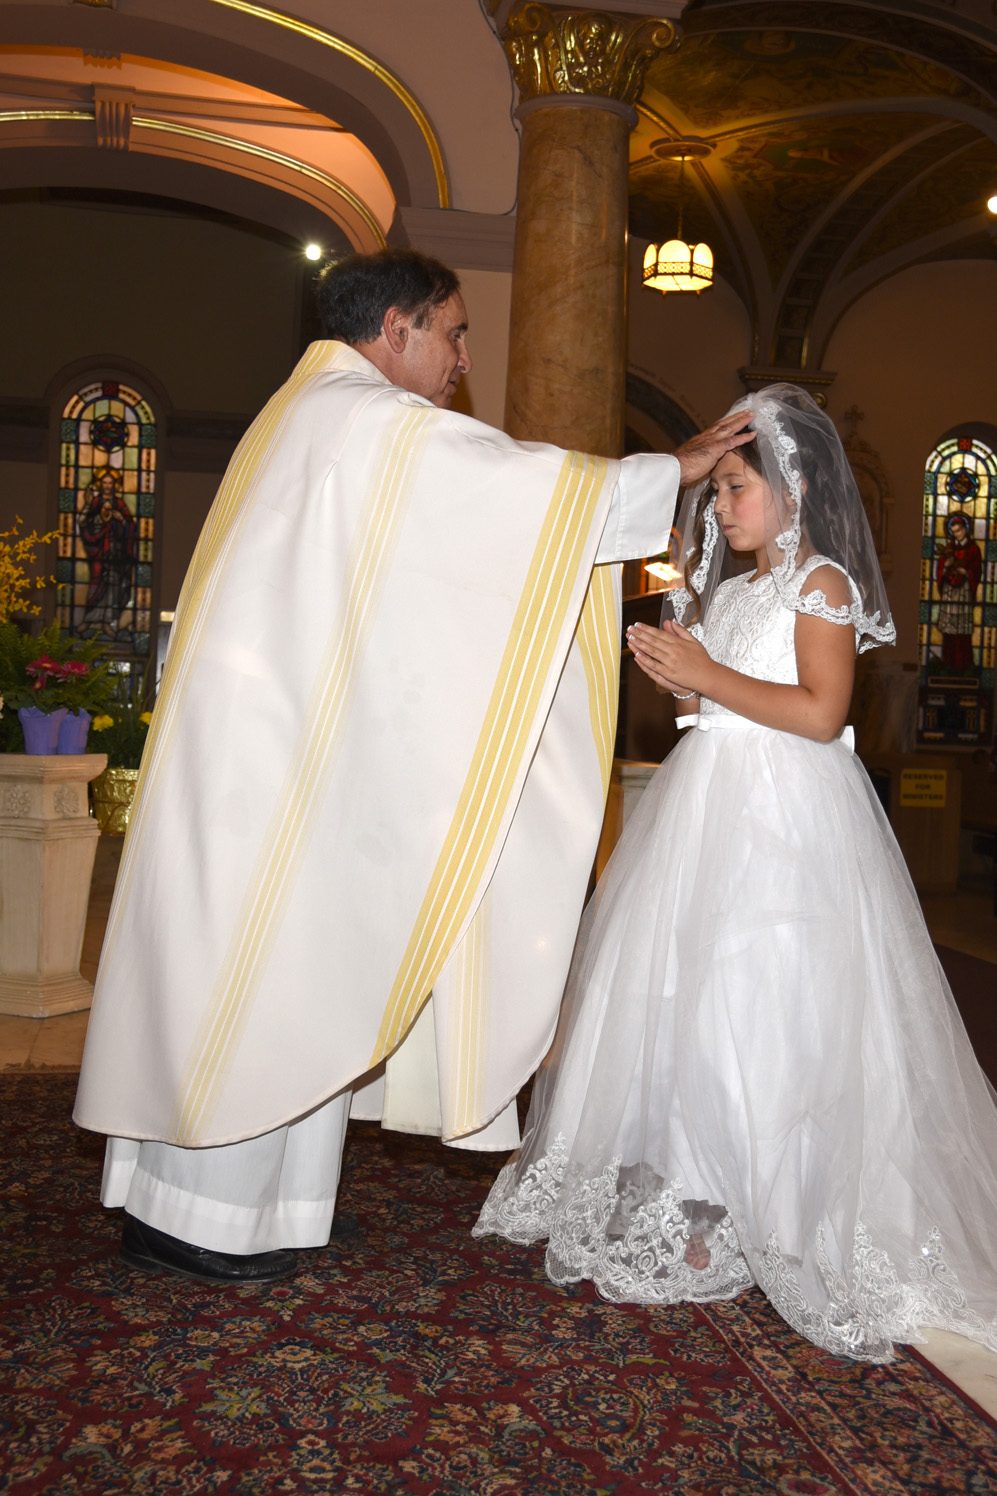 FIRST-COMMUNION-MAY-2-2021-1001001252